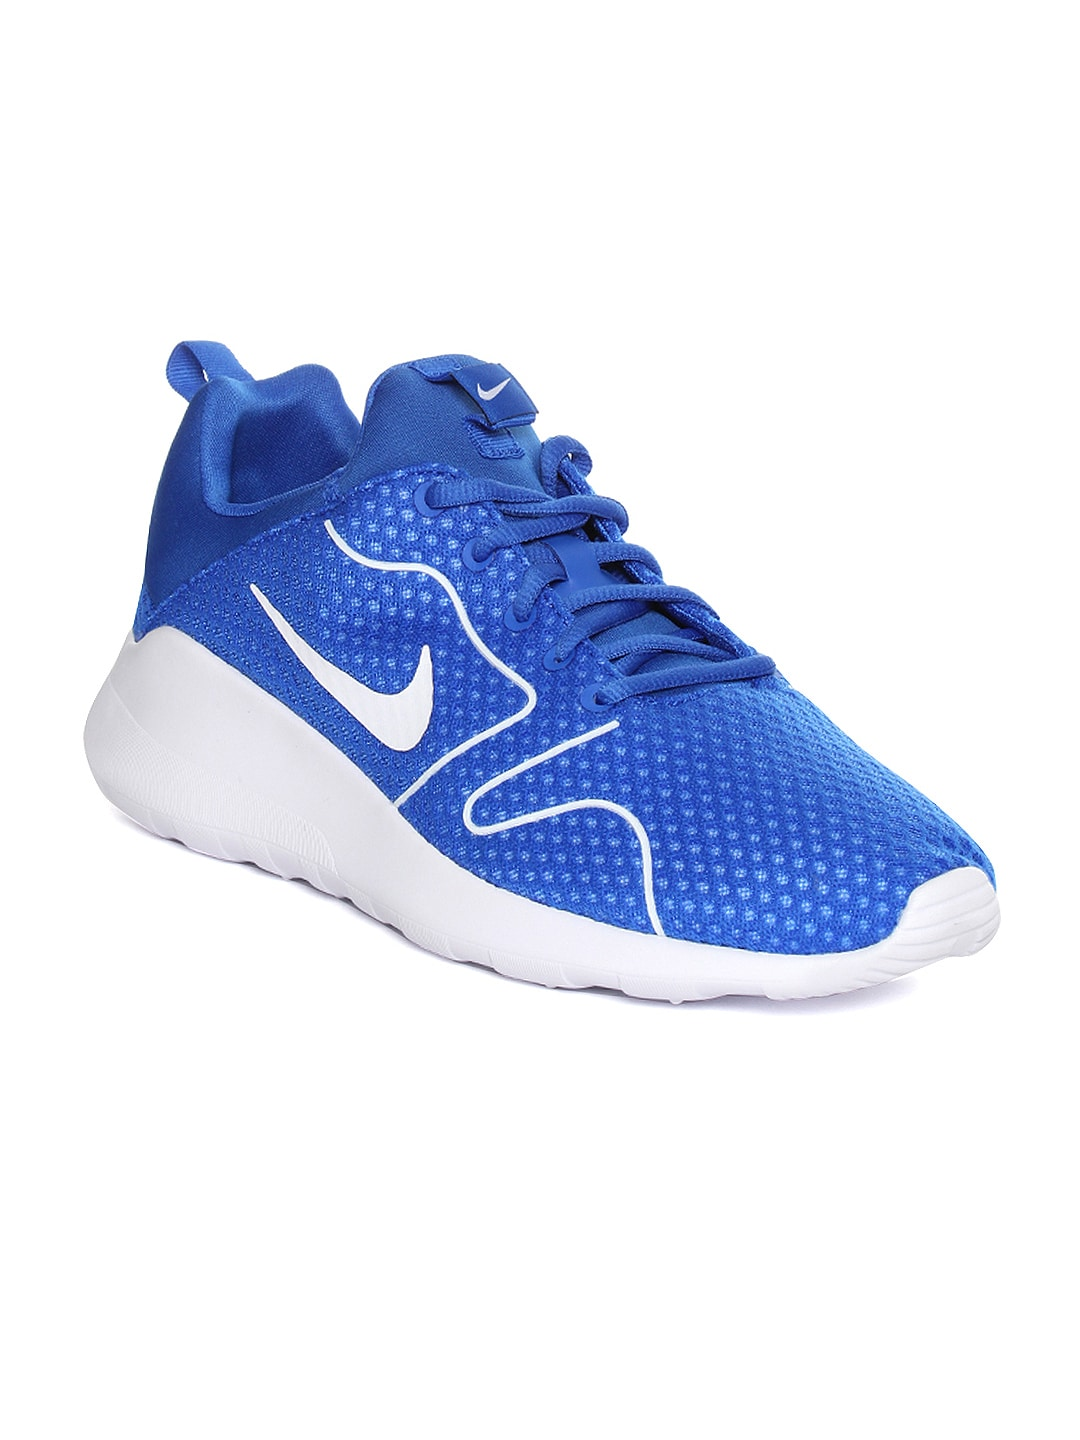 Nike 833457-400 Men Blue Kaishi 2 0 Br Running Shoes - Best Price in ... b75bc69539